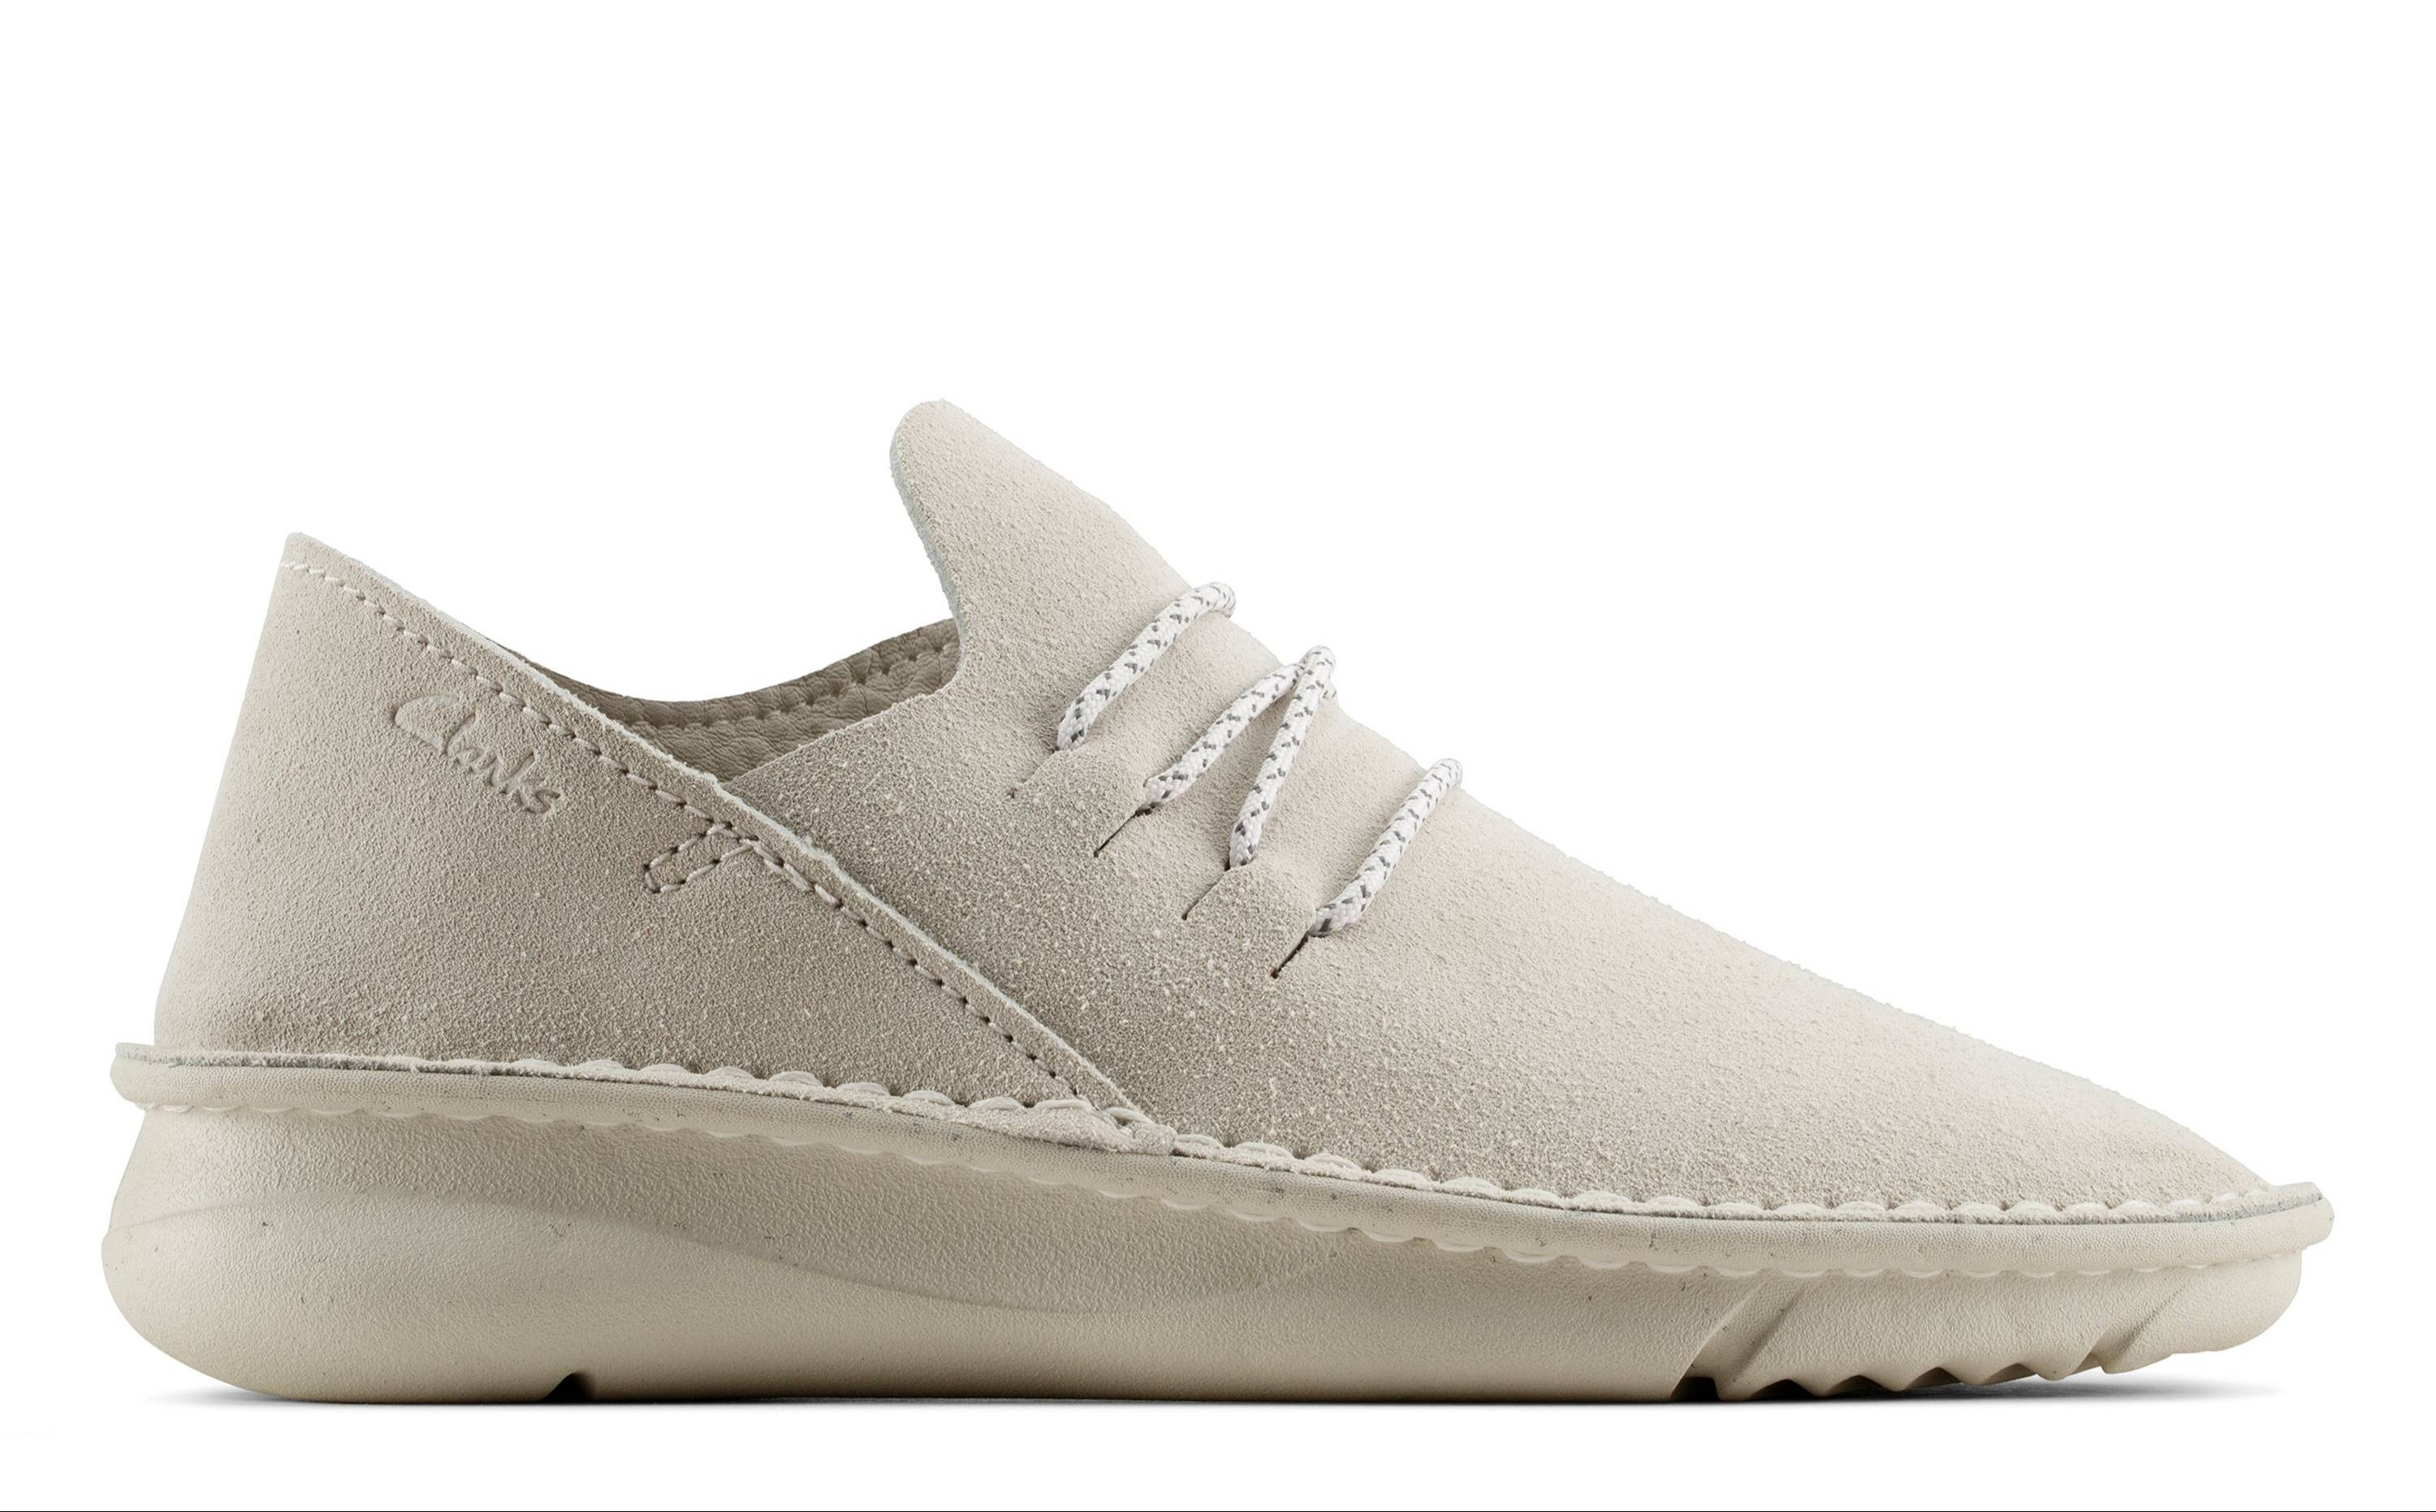 Clarks launches sneaker made with recycled materials